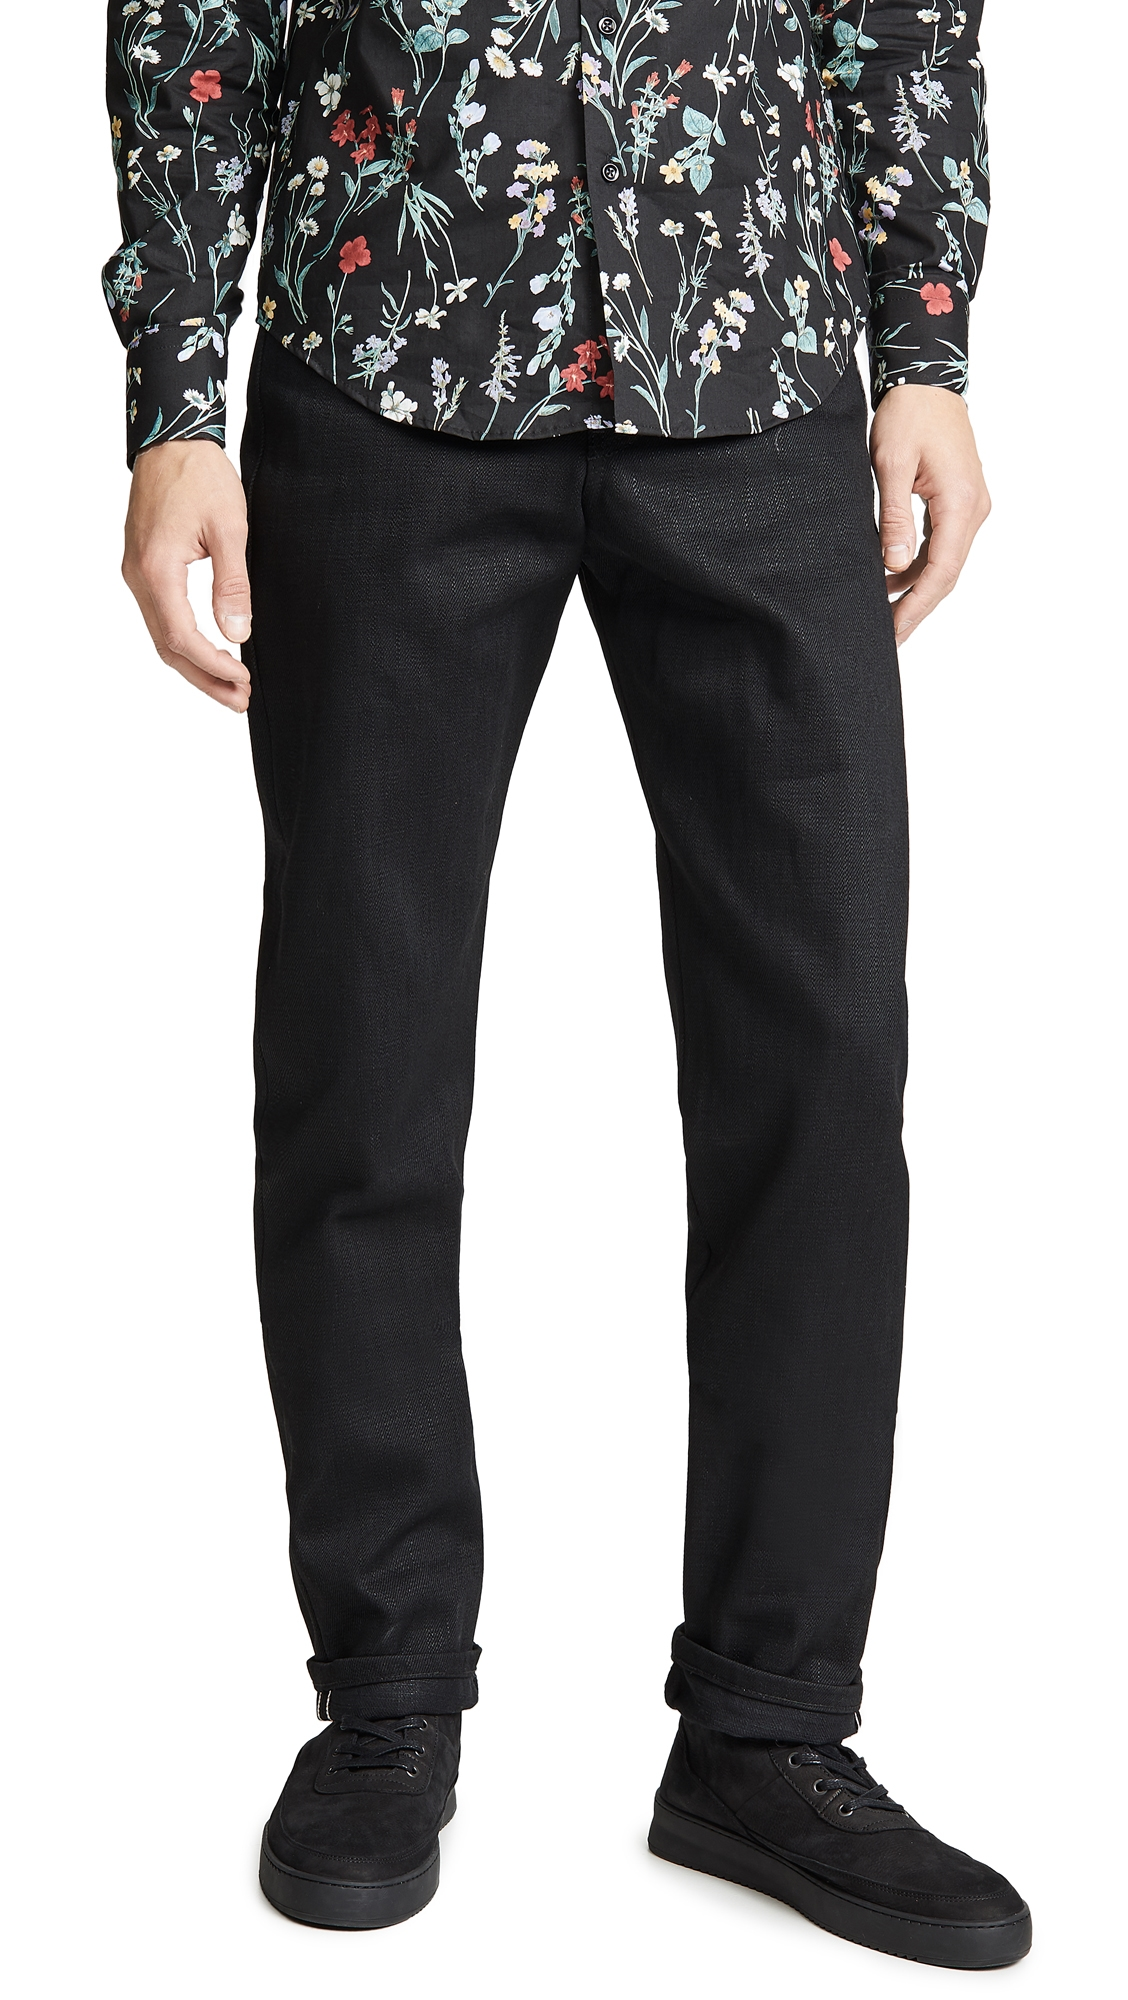 NAKED & FAMOUS Weird Guy Elephant 7 Jeans in Black